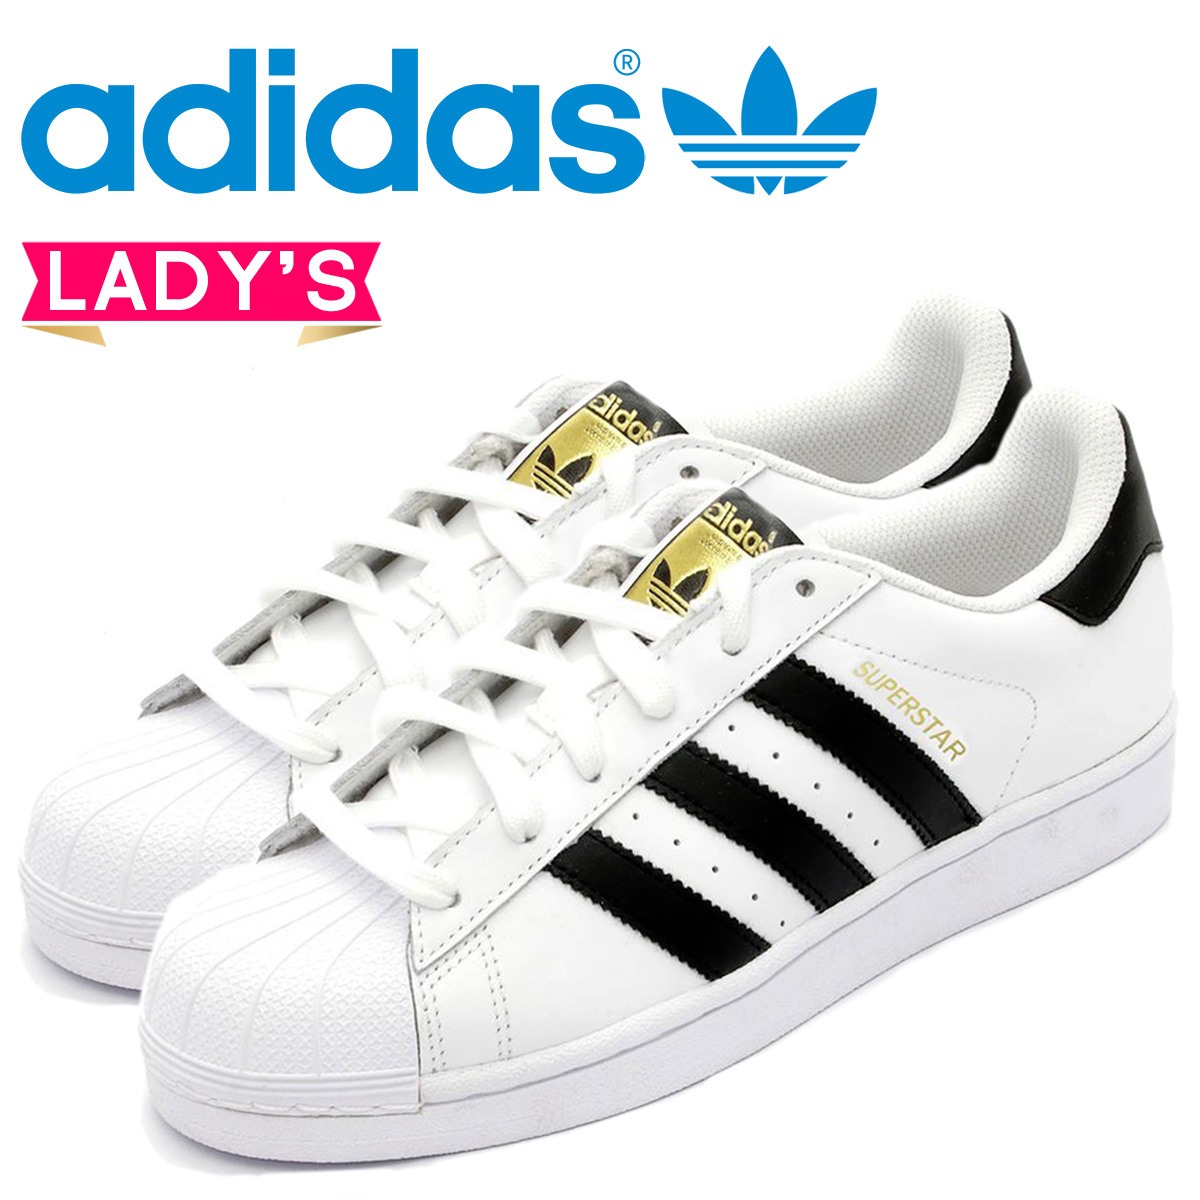 Adidas Superstar Shoes Junior